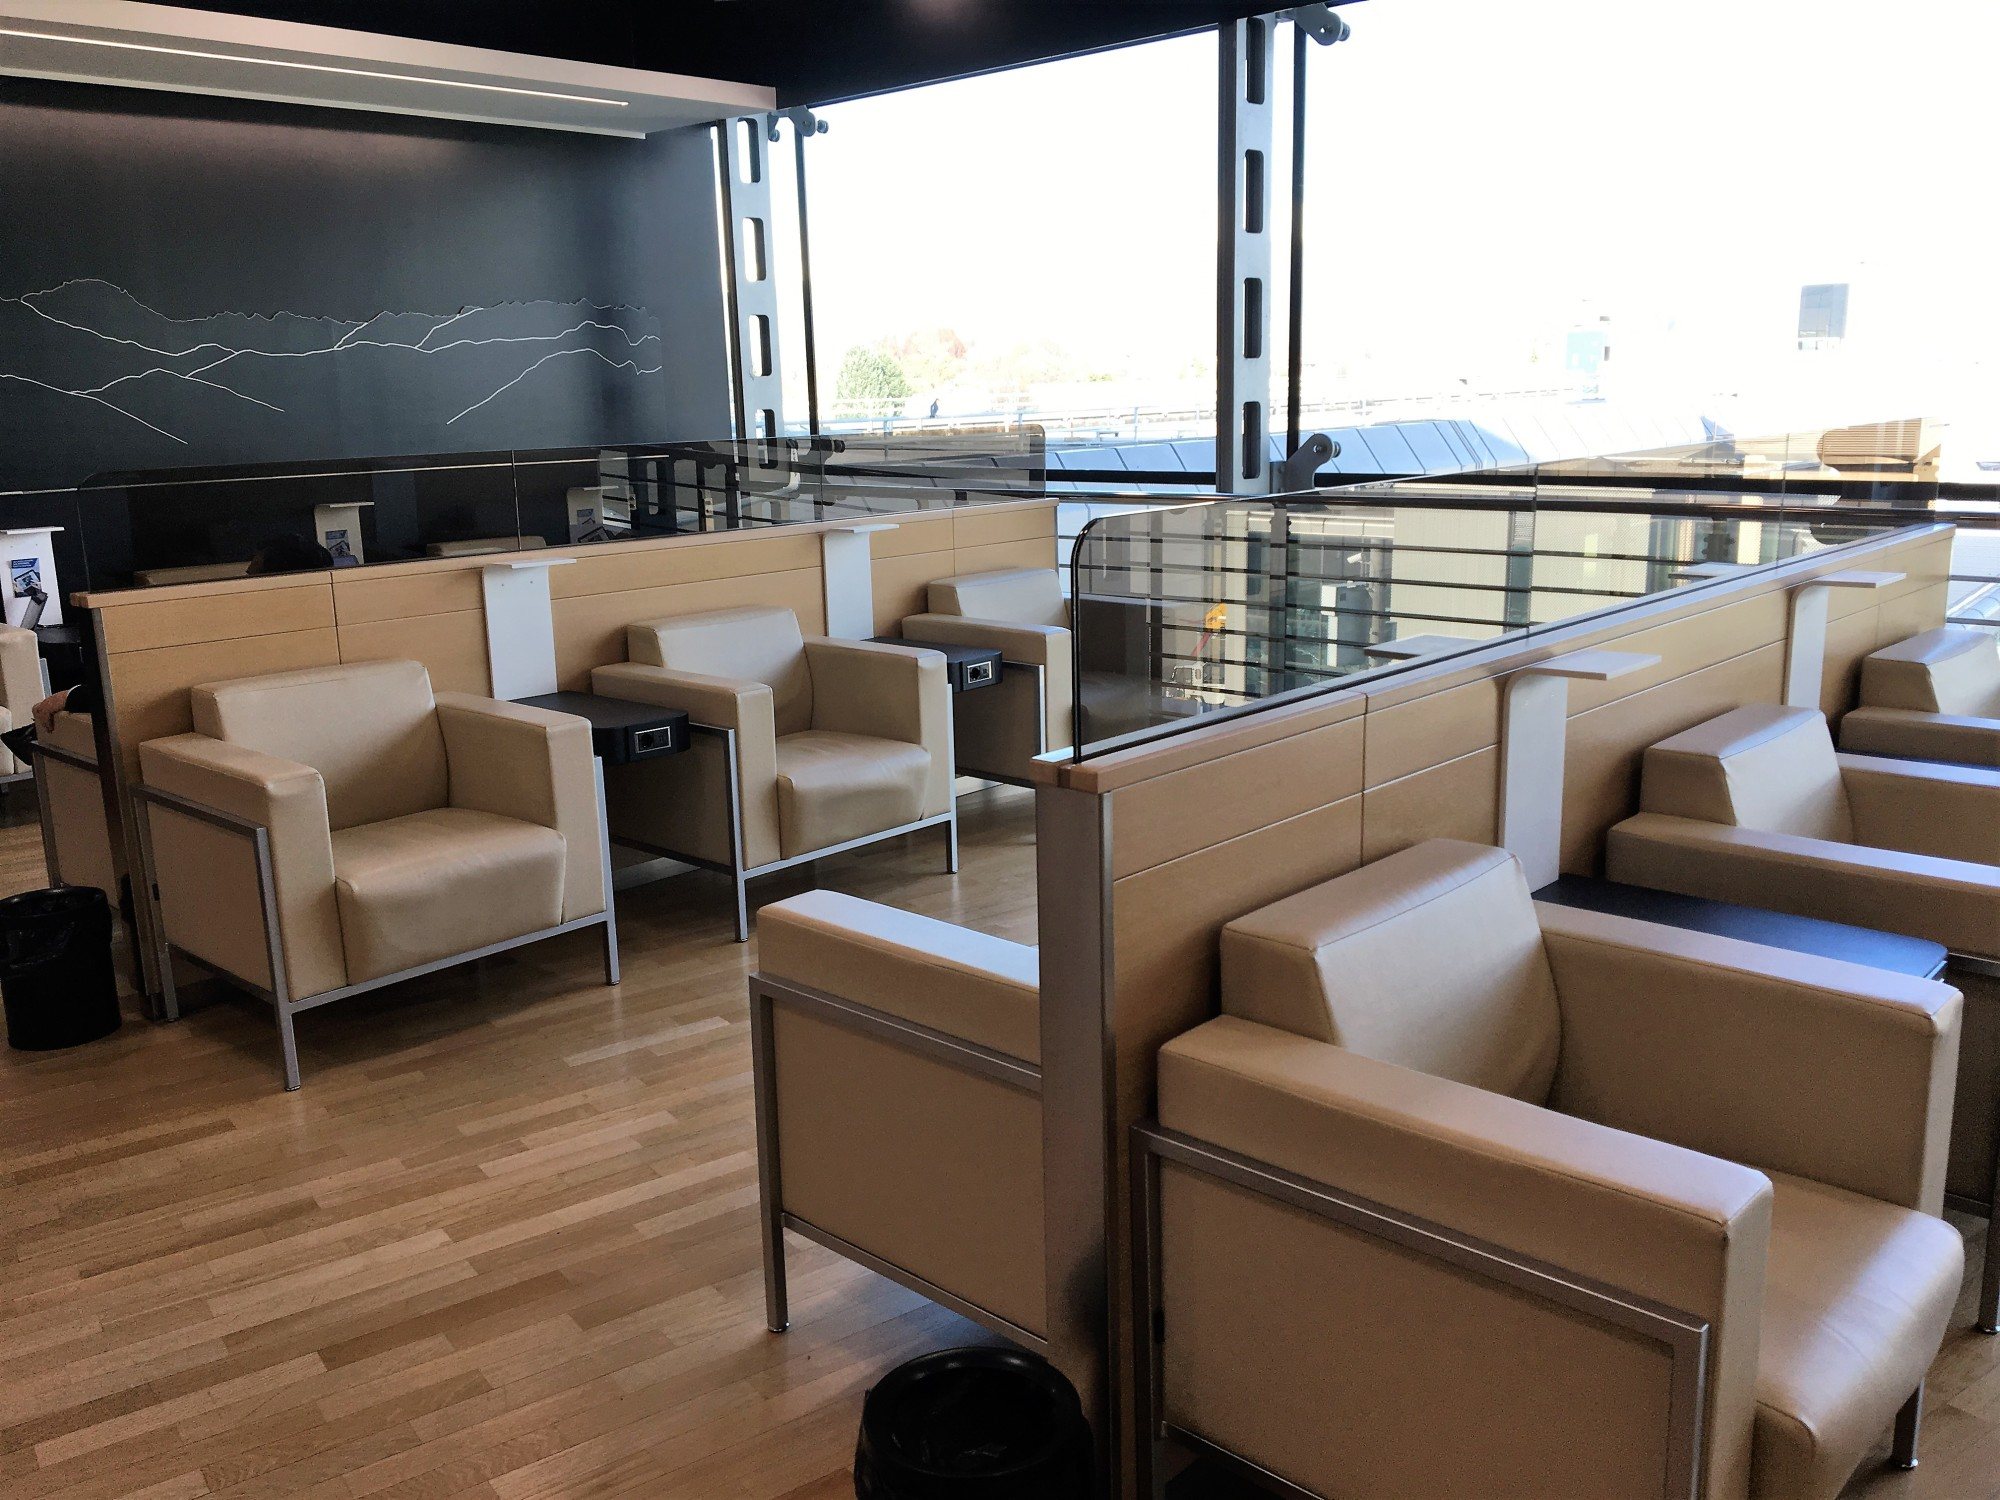 Trn Piemonte Lounge Reviews Photos Main Passenger Terminal  # Muebles Vaoli Leon